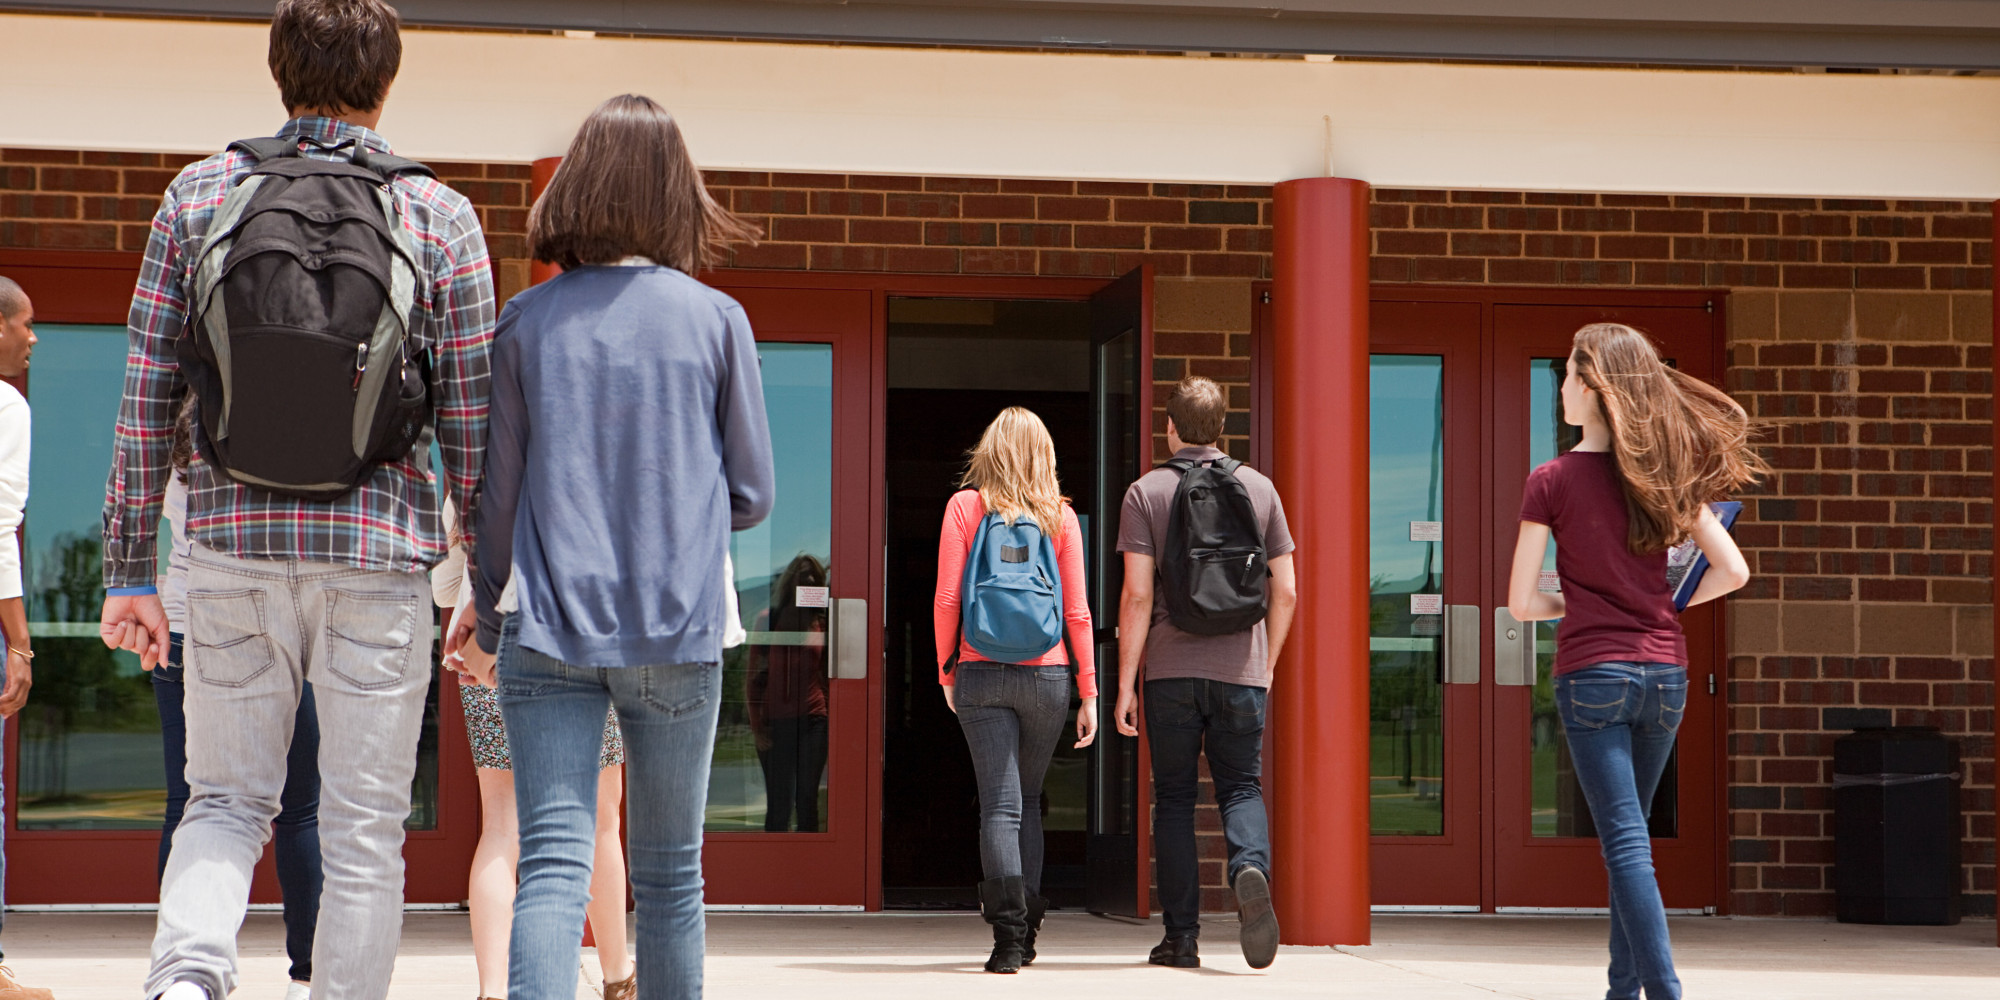 Give High School Students The Same Freedom As College